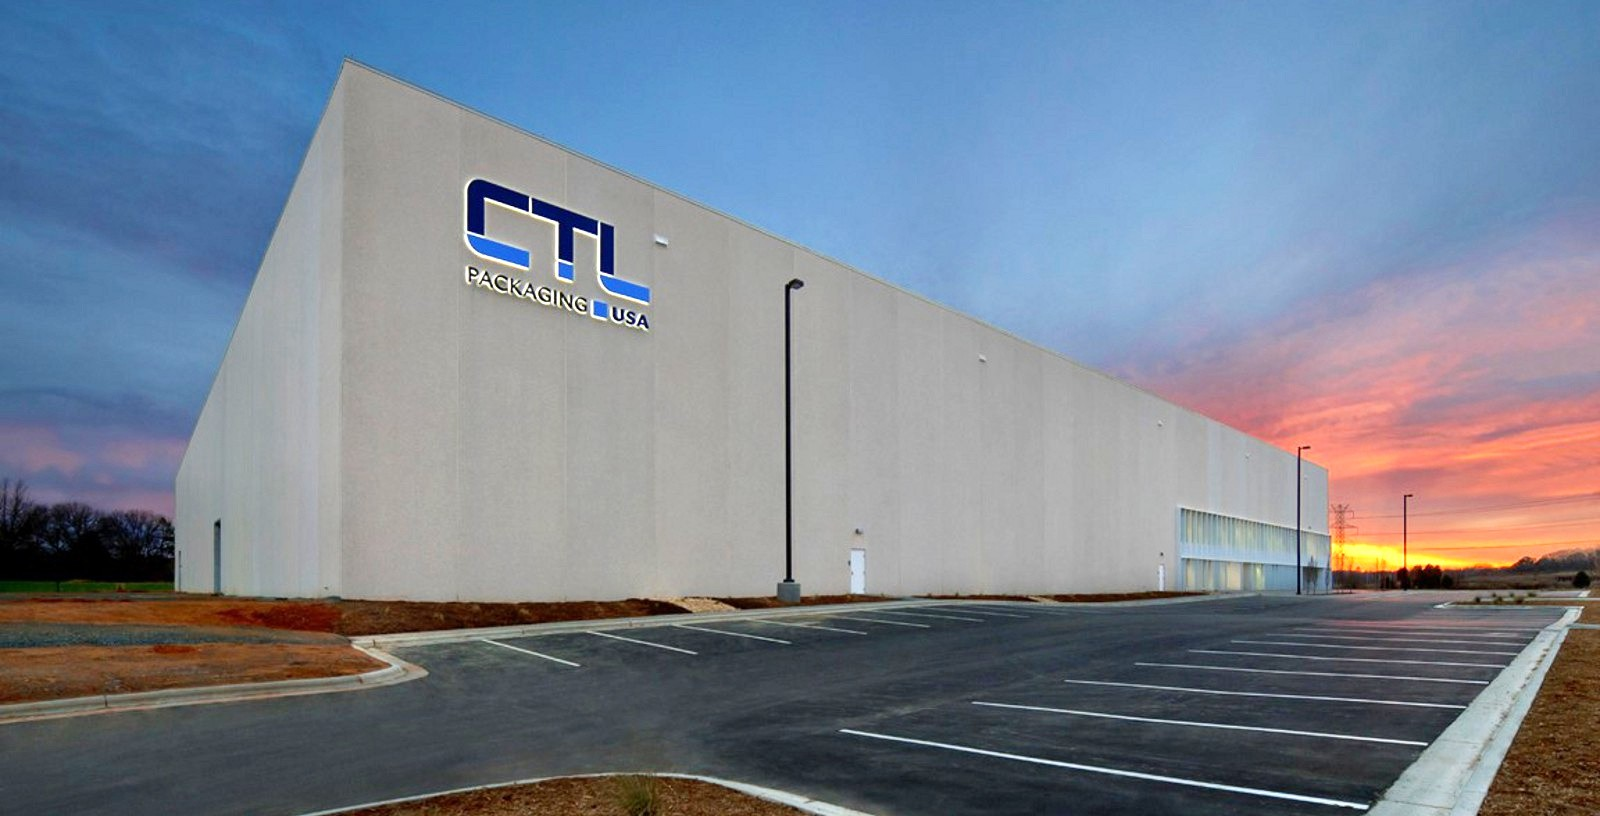 CTL_Packaging_USA_Manufacturing_plant_plastic_containers_01_Idom